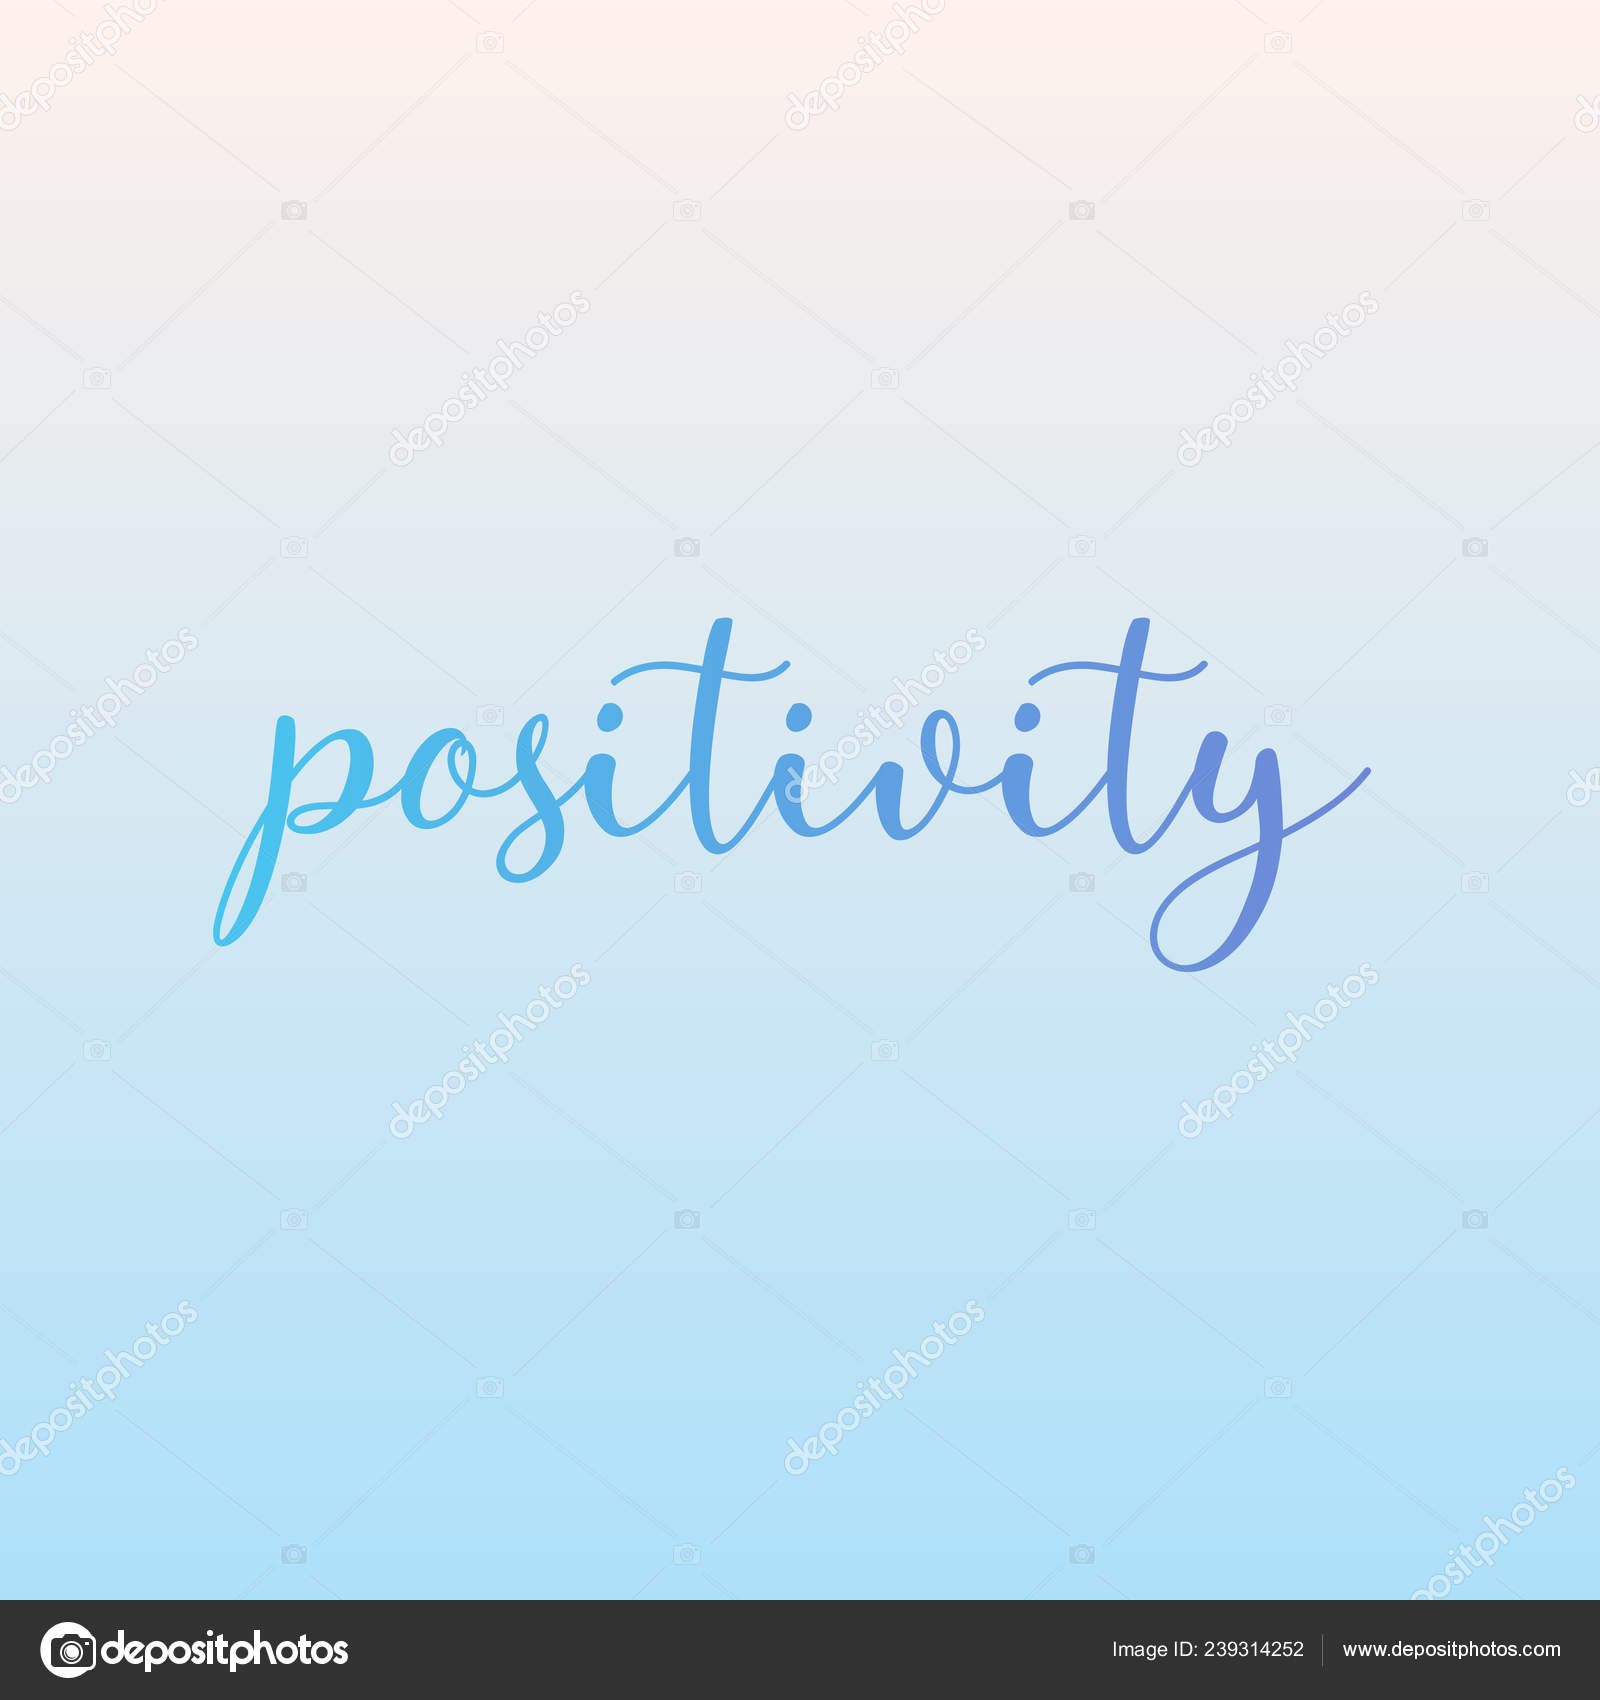 Positivity Motivational Quotes Positive Affirmations ...